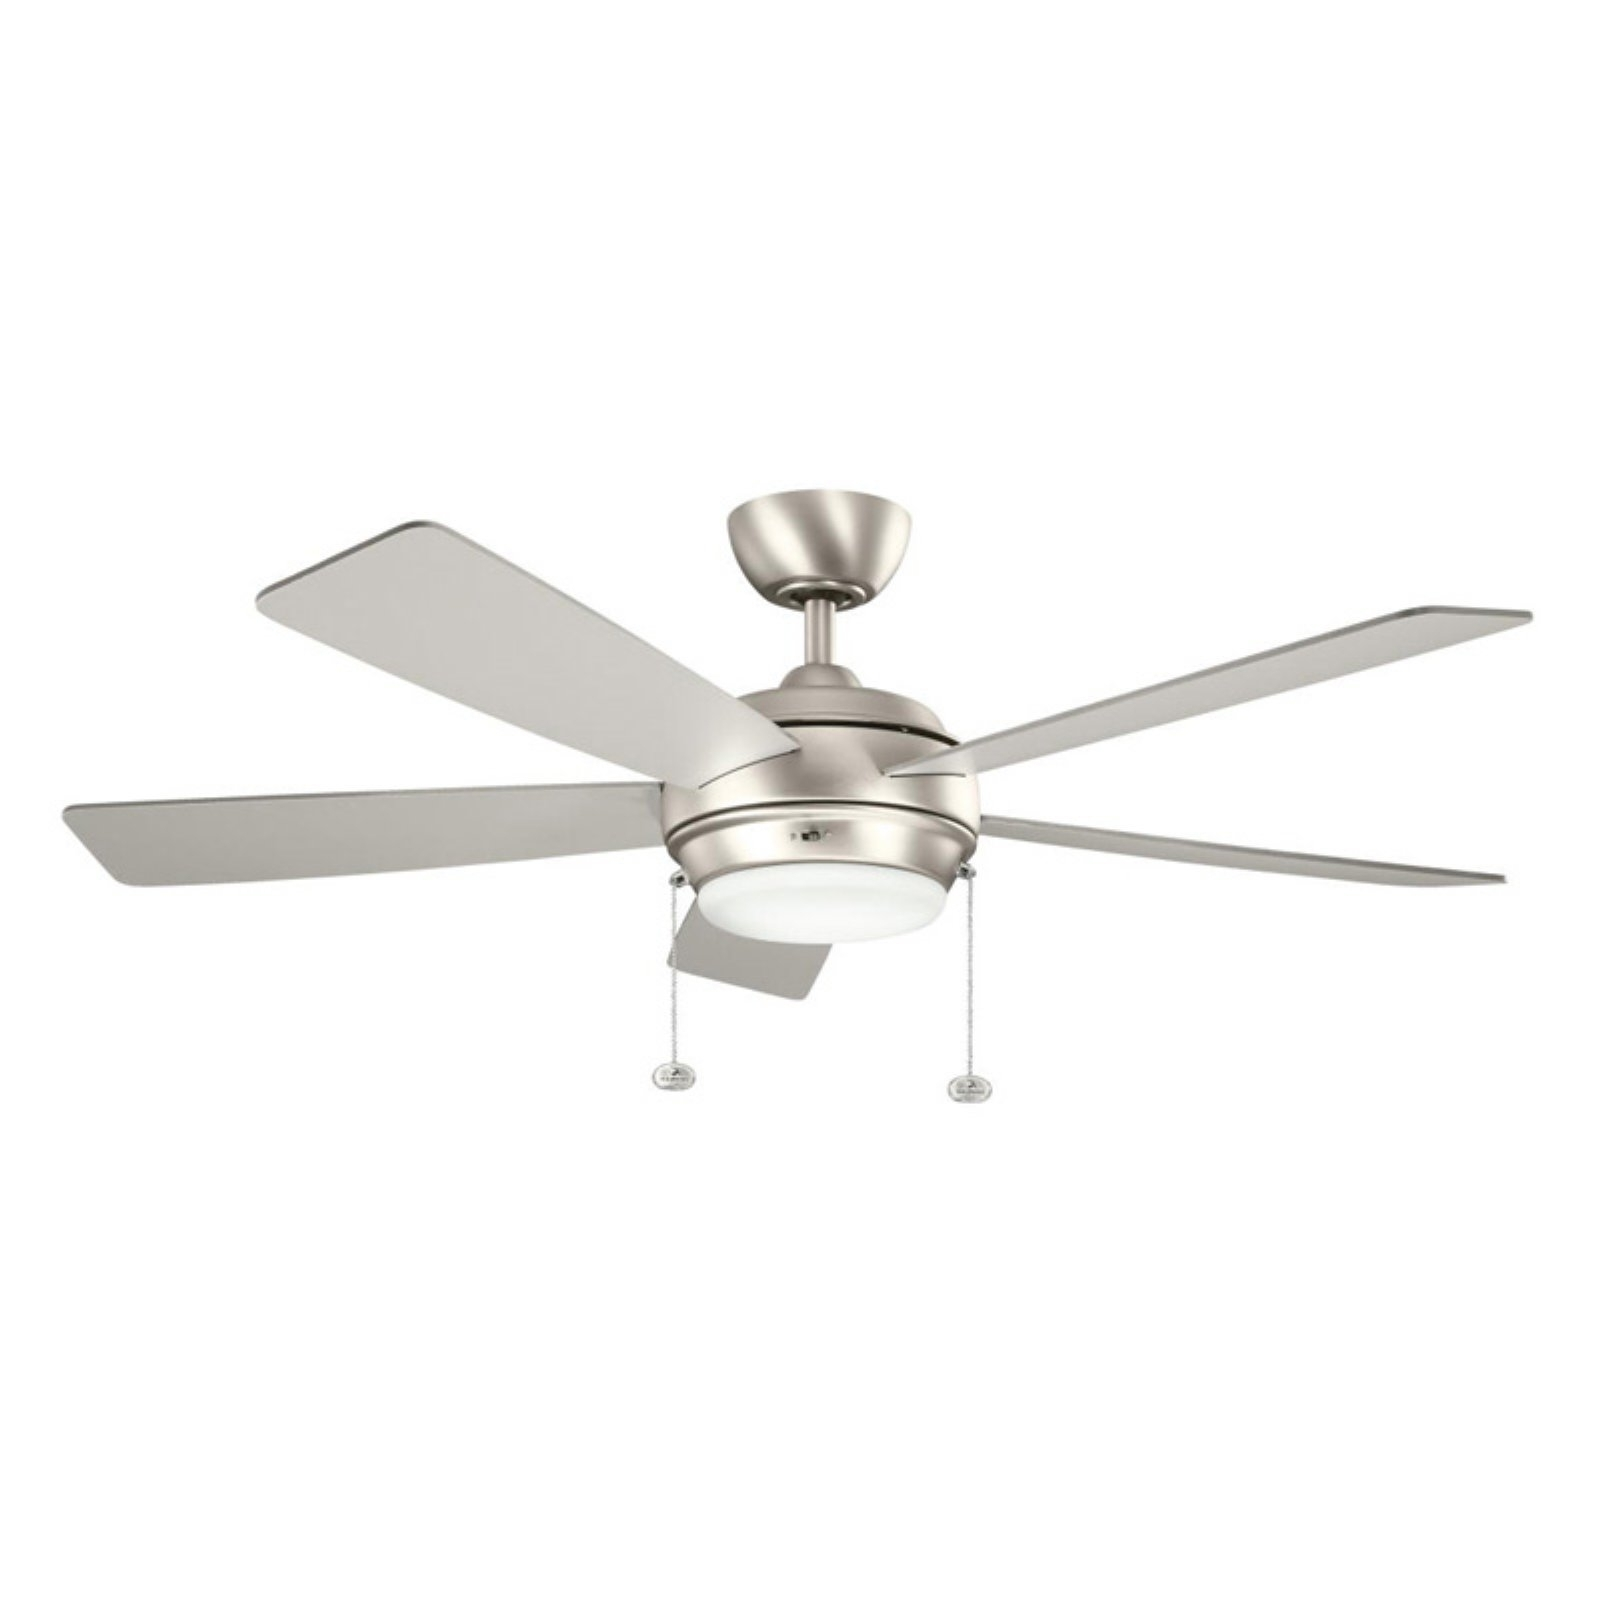 Kichler Outdoor Ceiling Fans With Lights Inside Fashionable Kichler Starkk 52 In. Indoor / Outdoor Ceiling Fan – Walmart (Gallery 10 of 20)